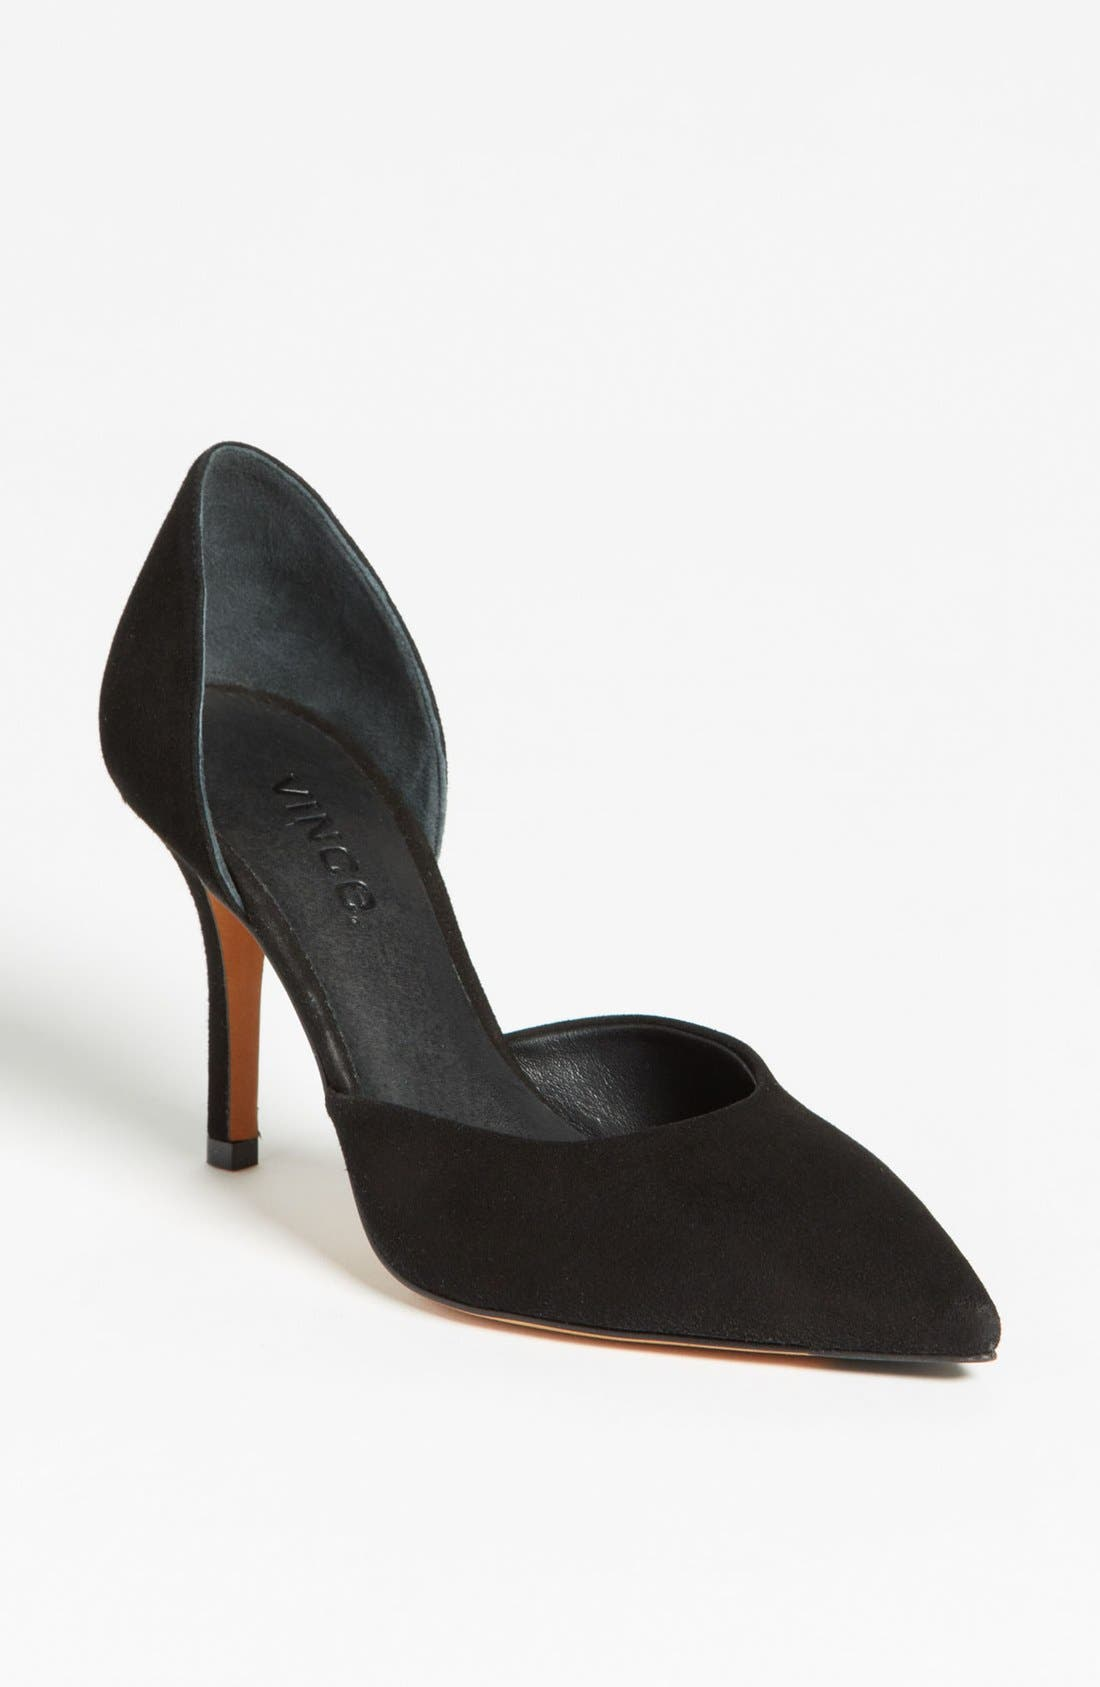 Alternate Image 1 Selected - Vince 'Celeste' Suede Pointy Toe Pump (Women)